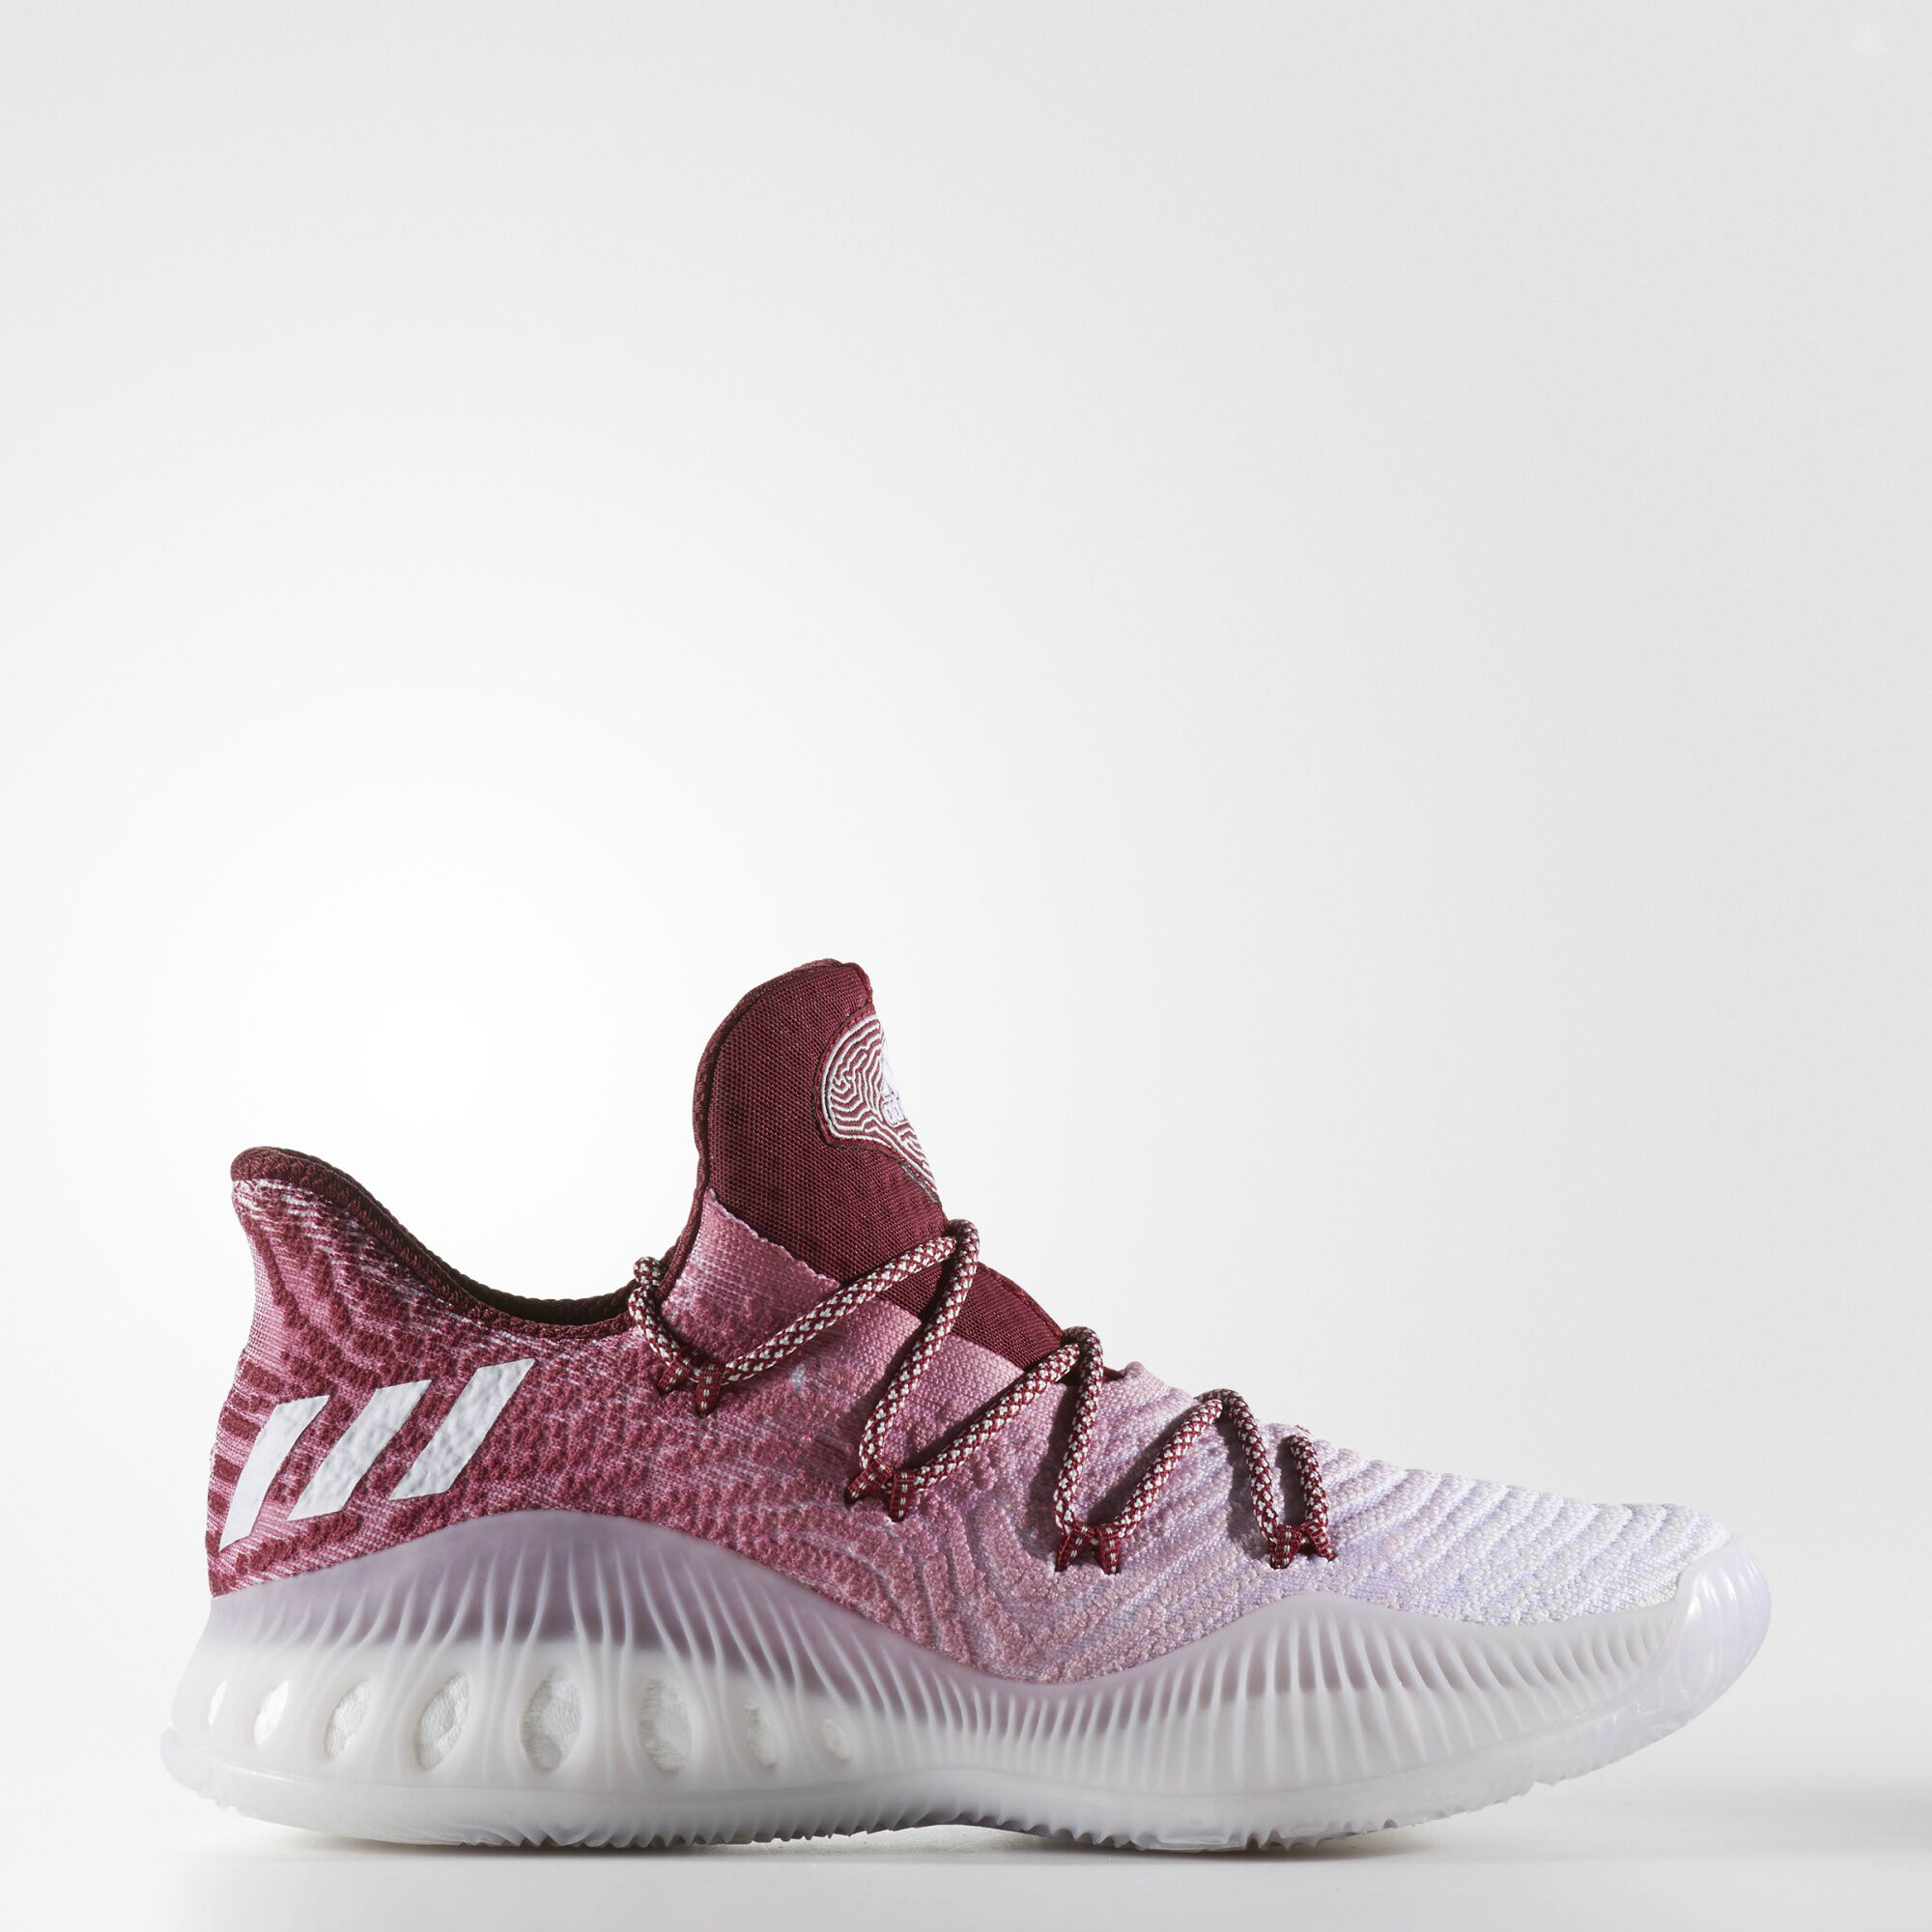 finest selection 0db36 c33ff adidas extaball allegro adidas crazy explosive 2017 primeknit low shoes  light solid grey running wh